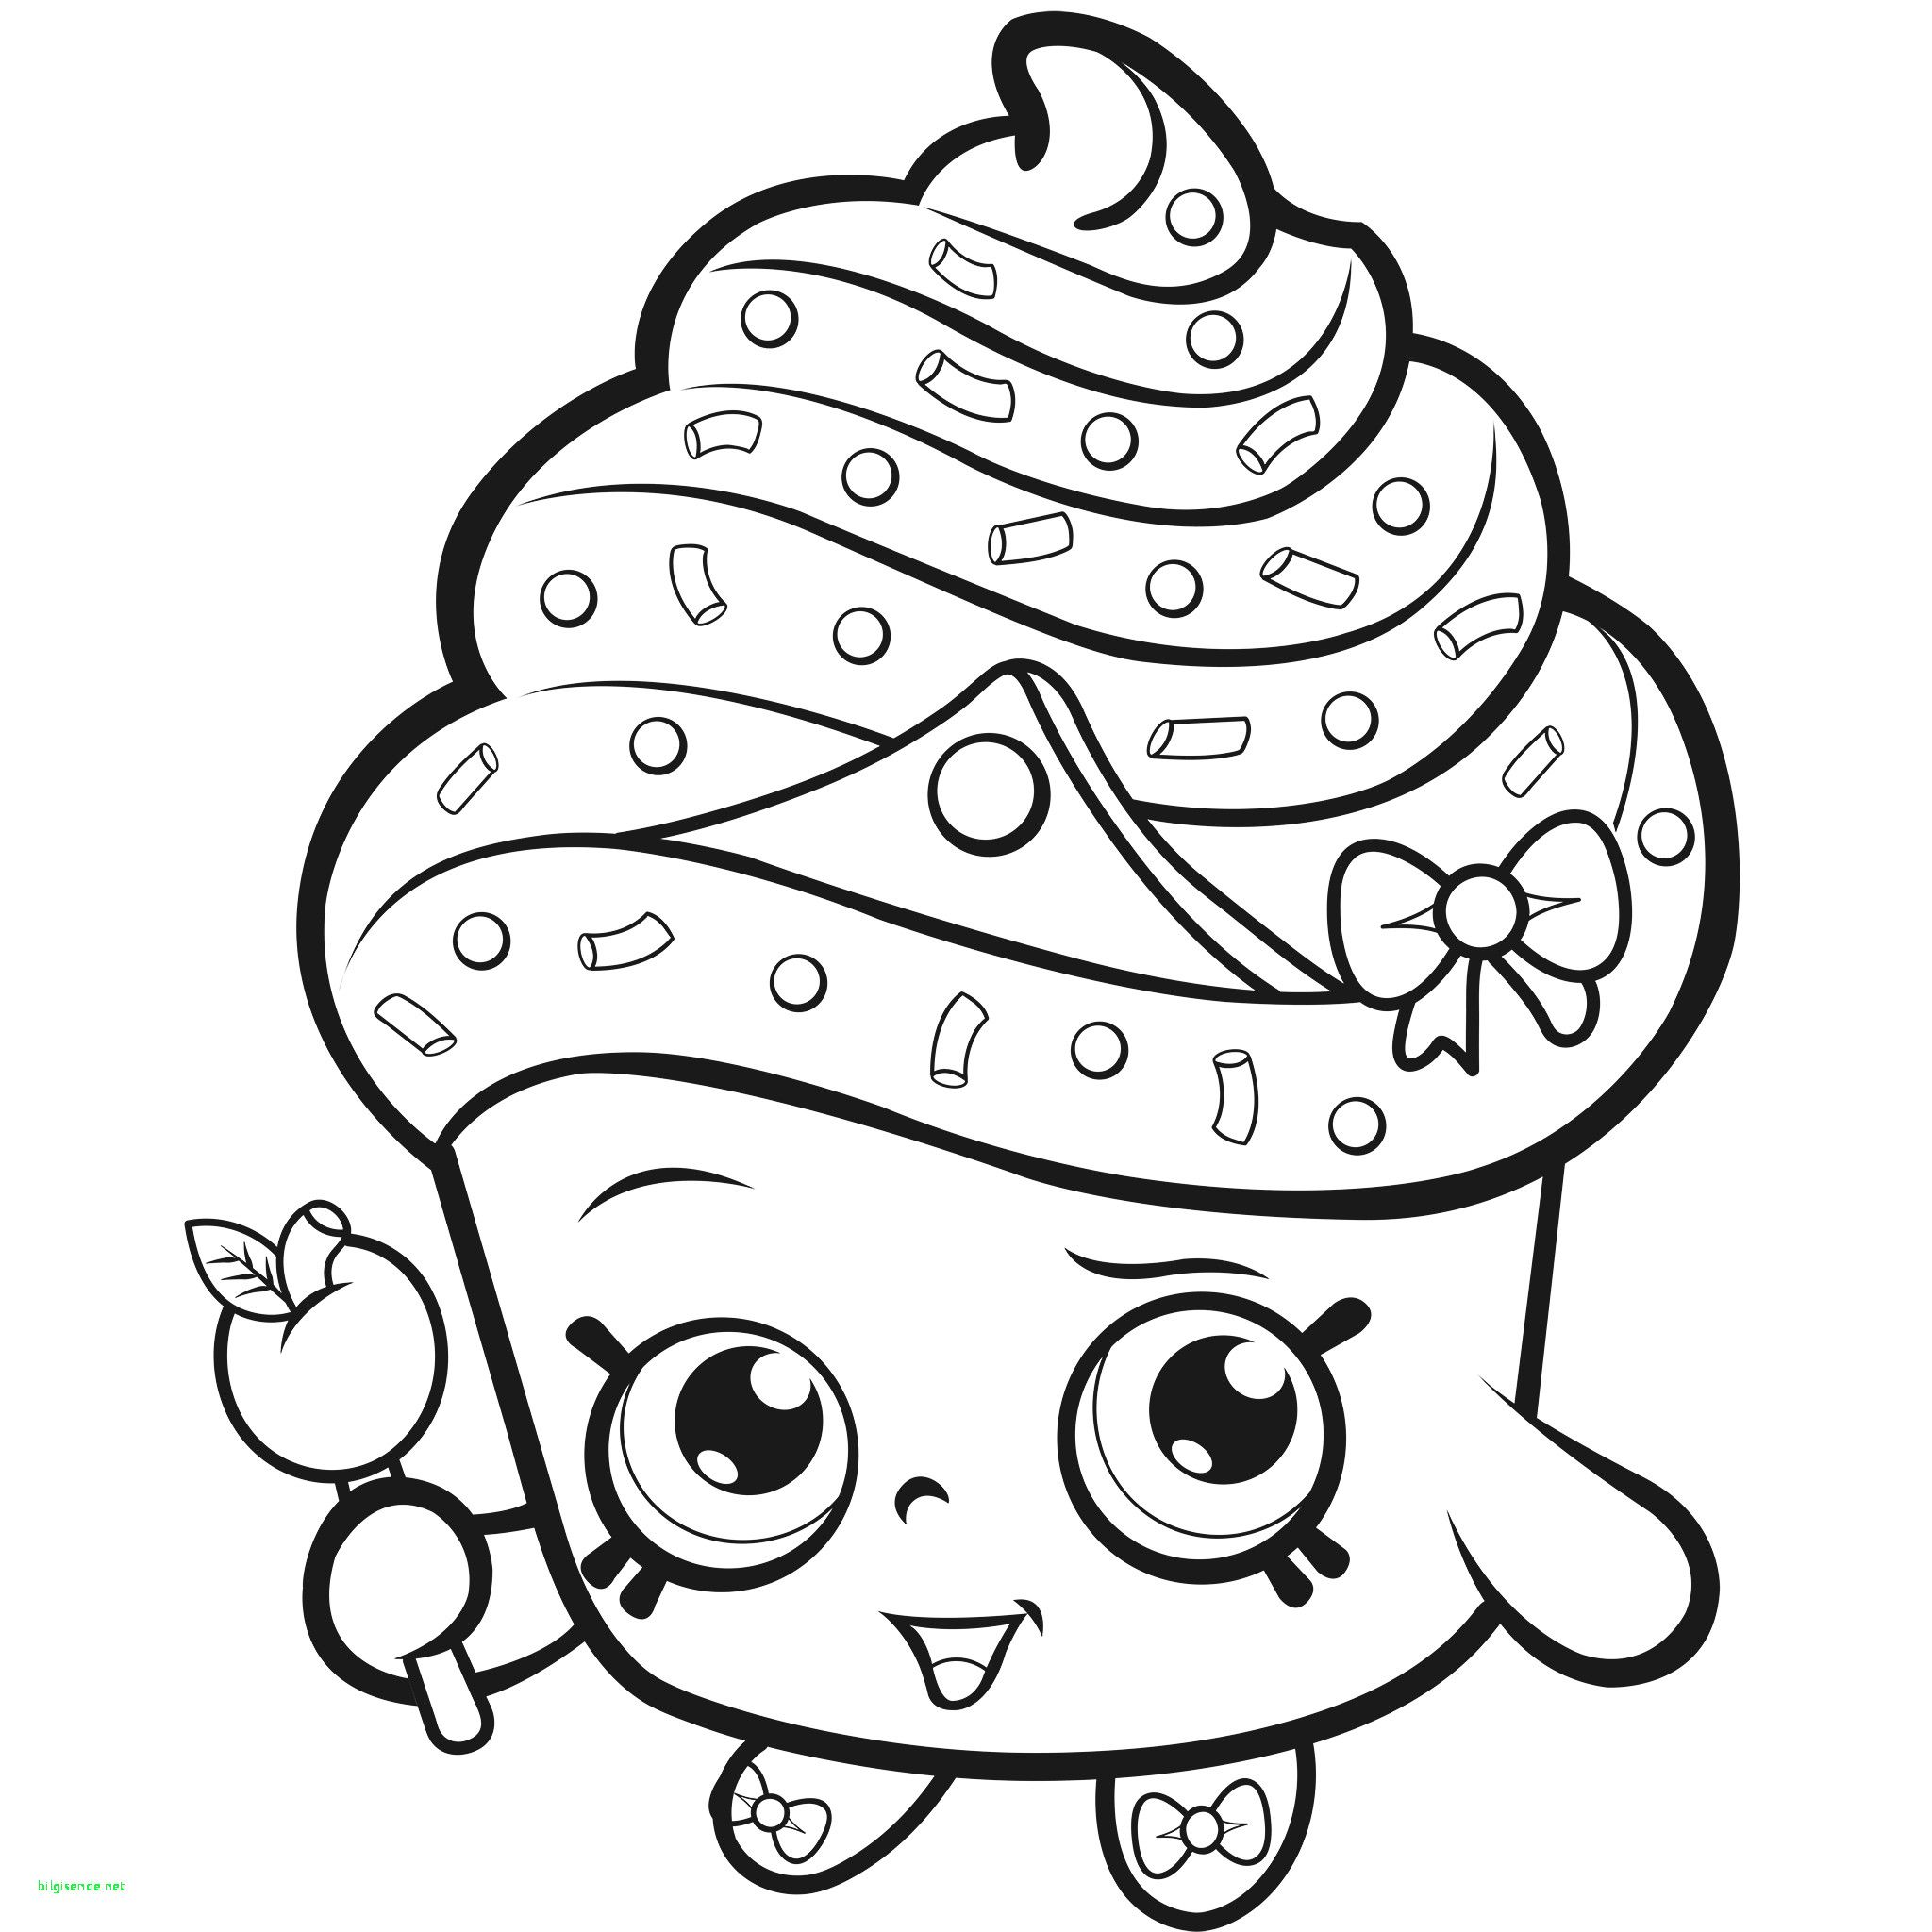 Rainbow Corn Colouring Pages Uk Collection